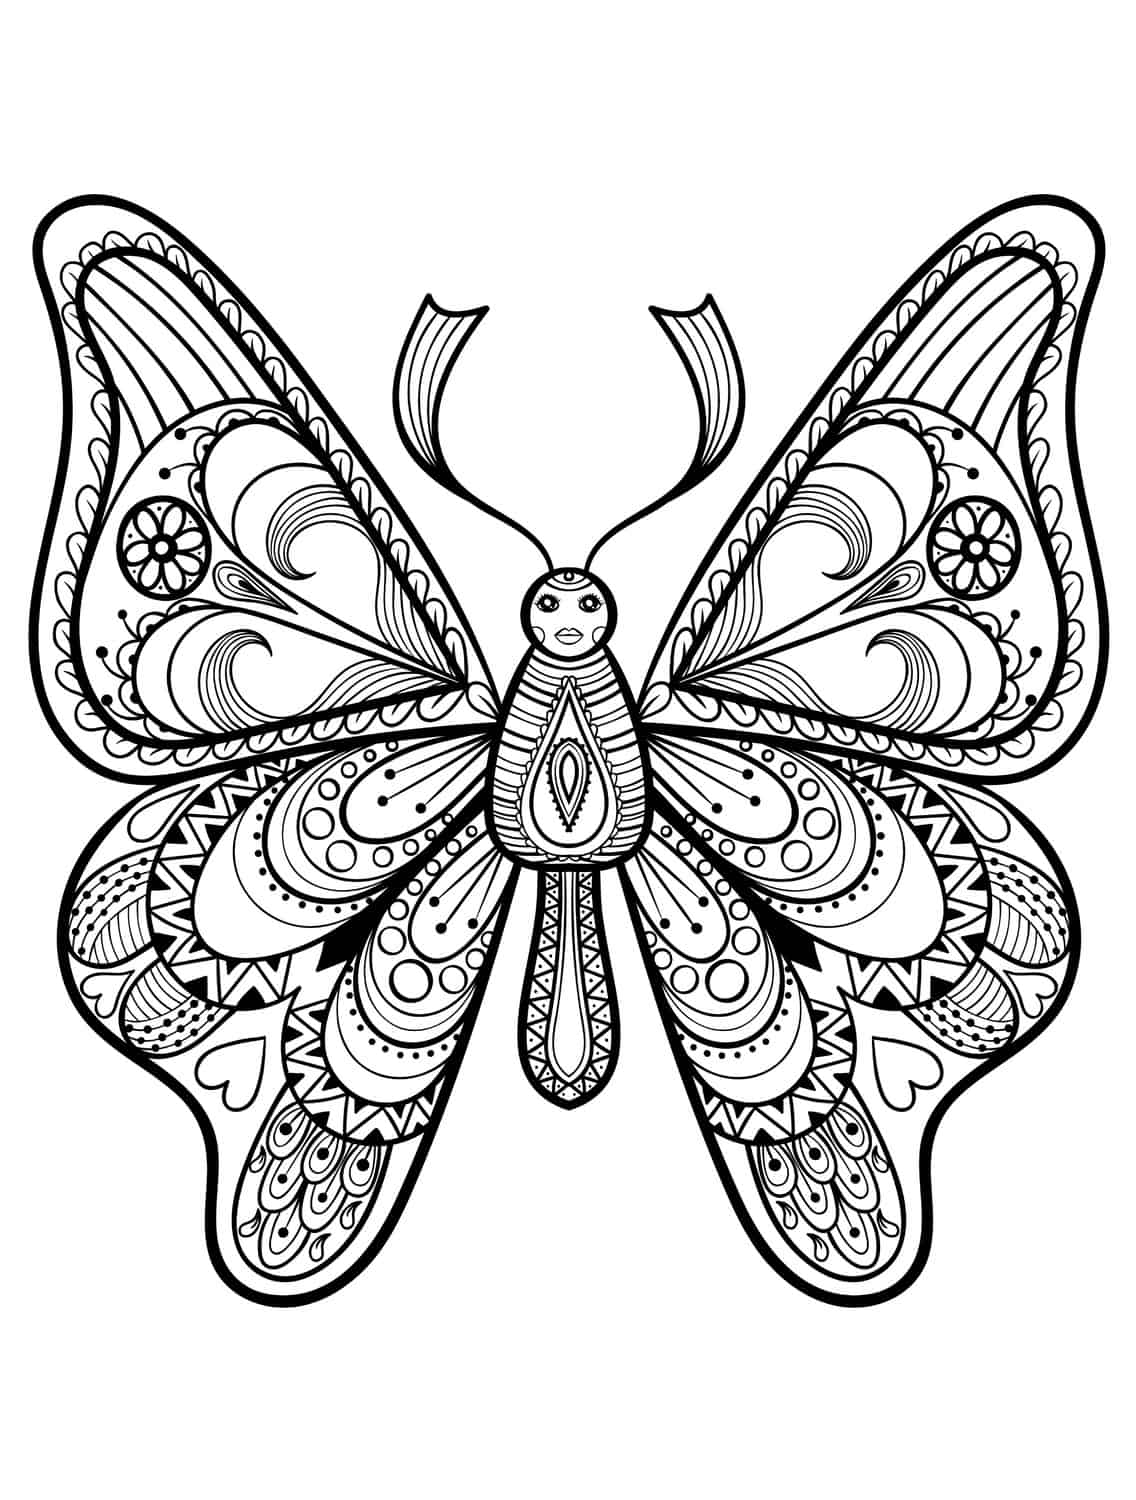 pretty animals coloring pages - photo#13